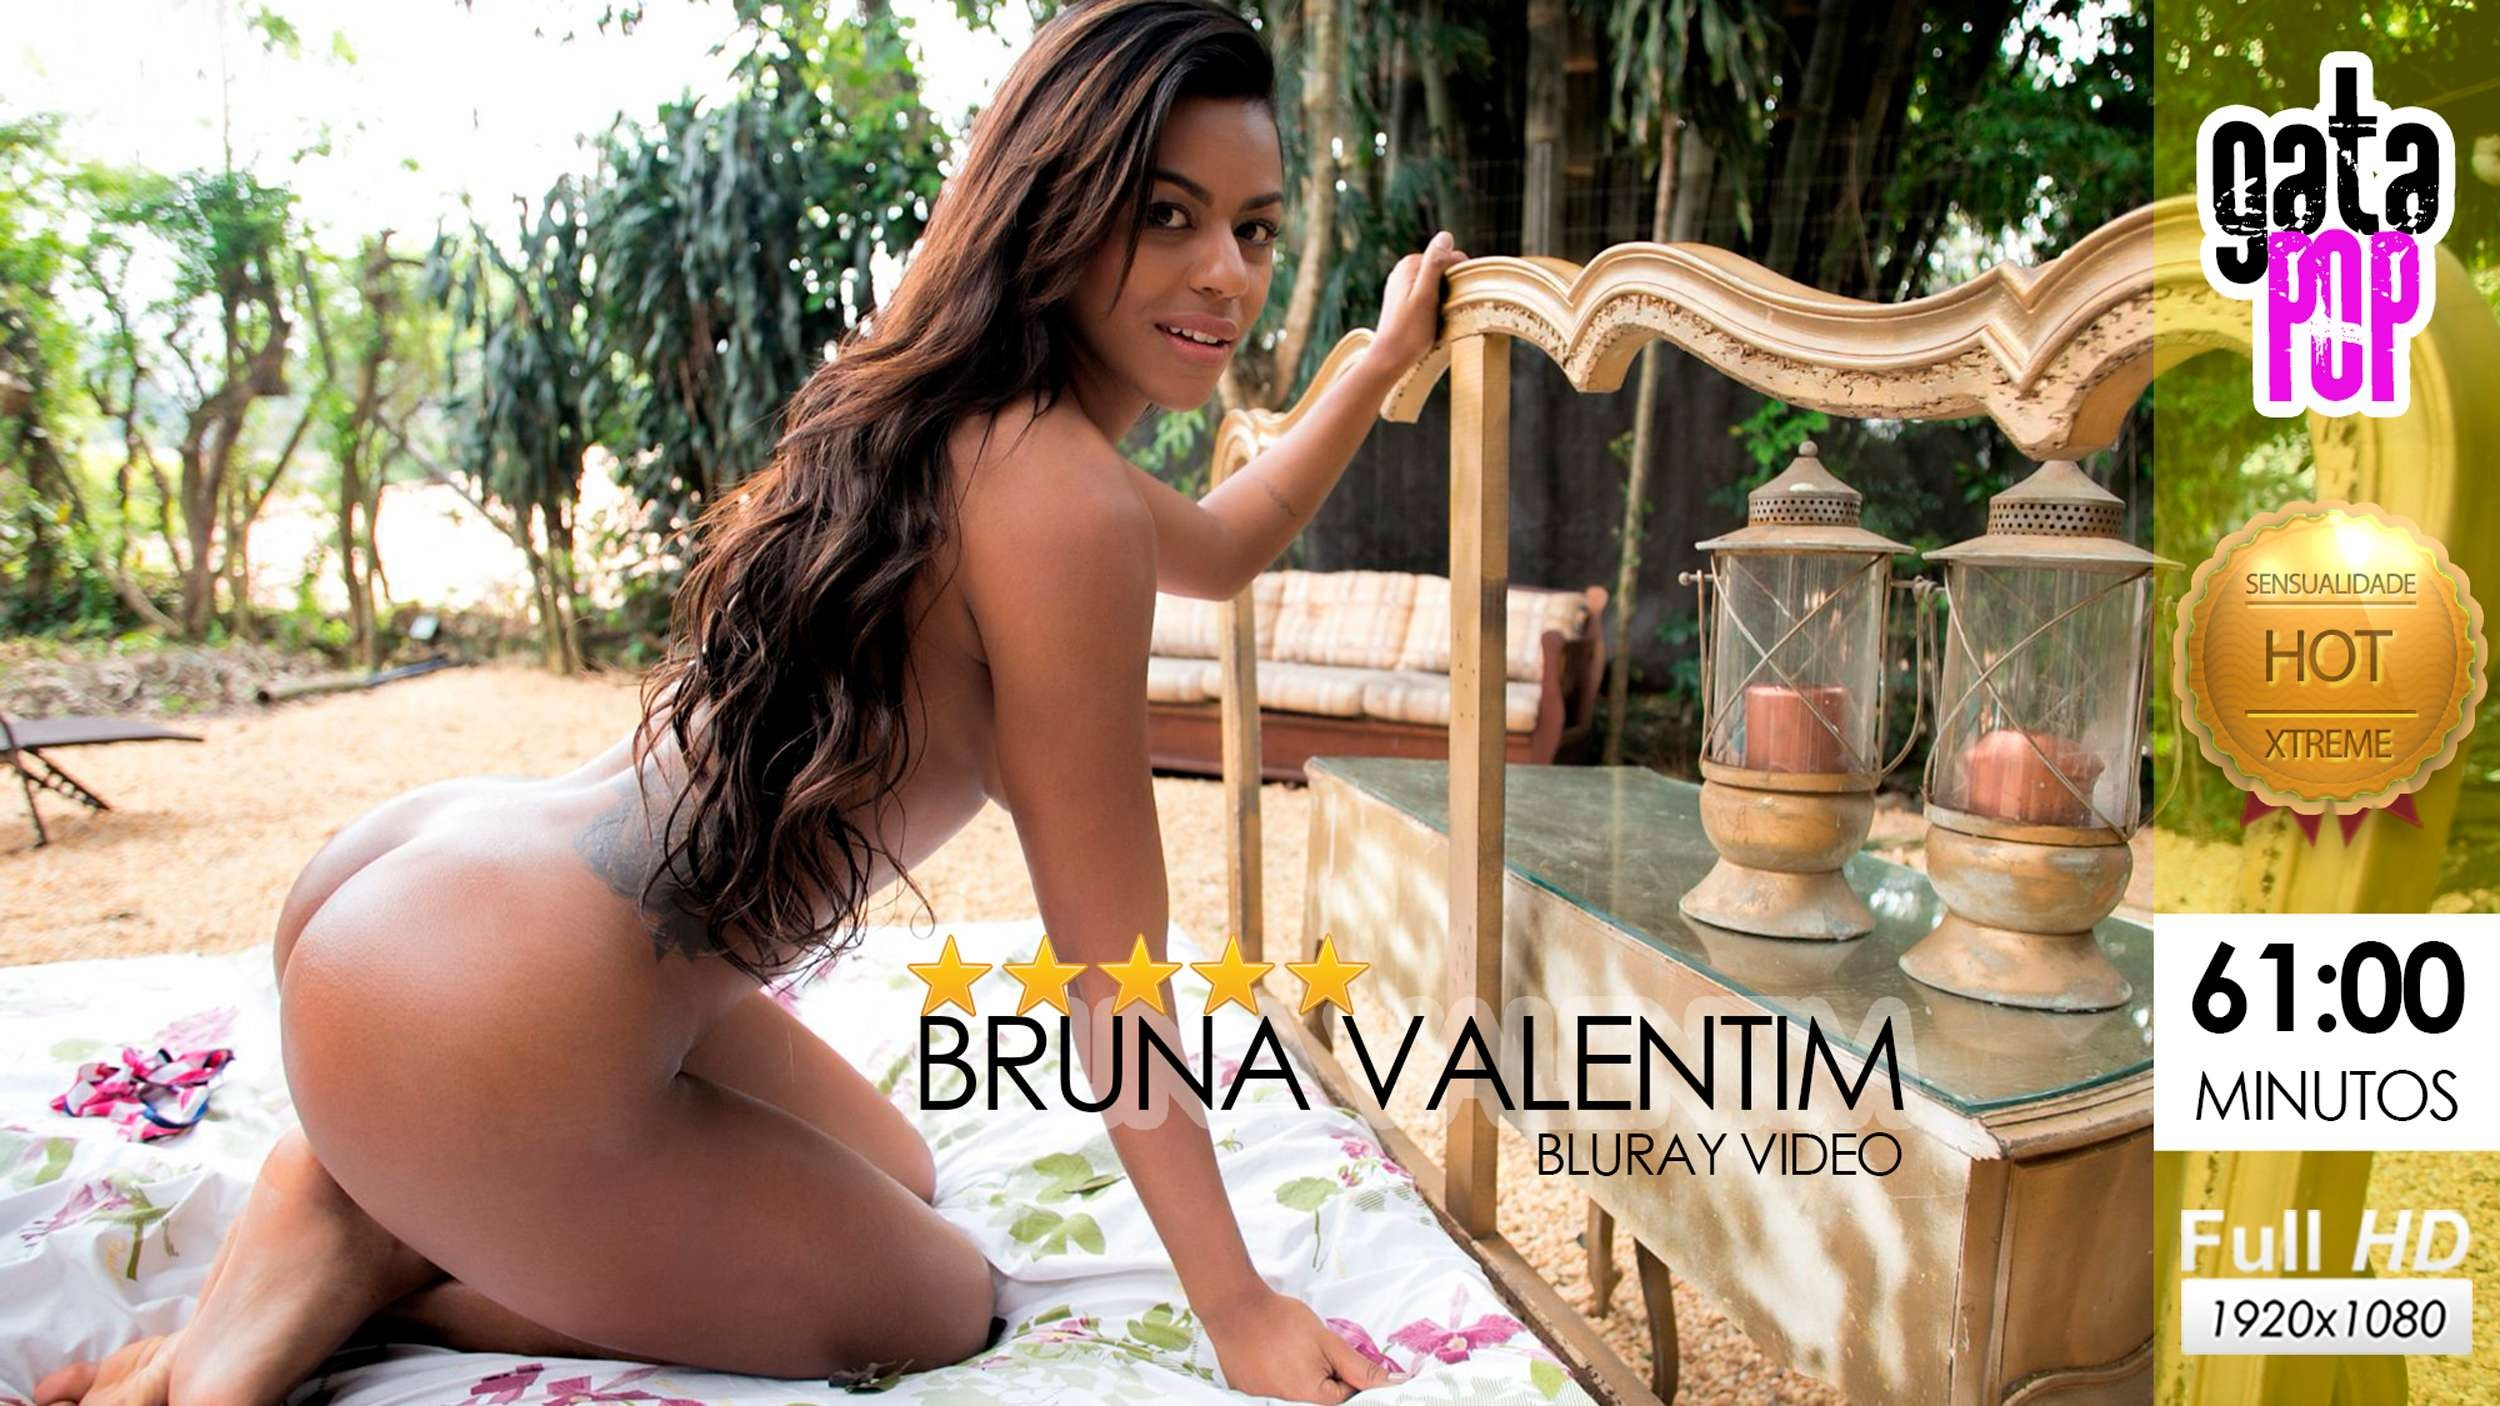 Bruna Valentin - Bluray